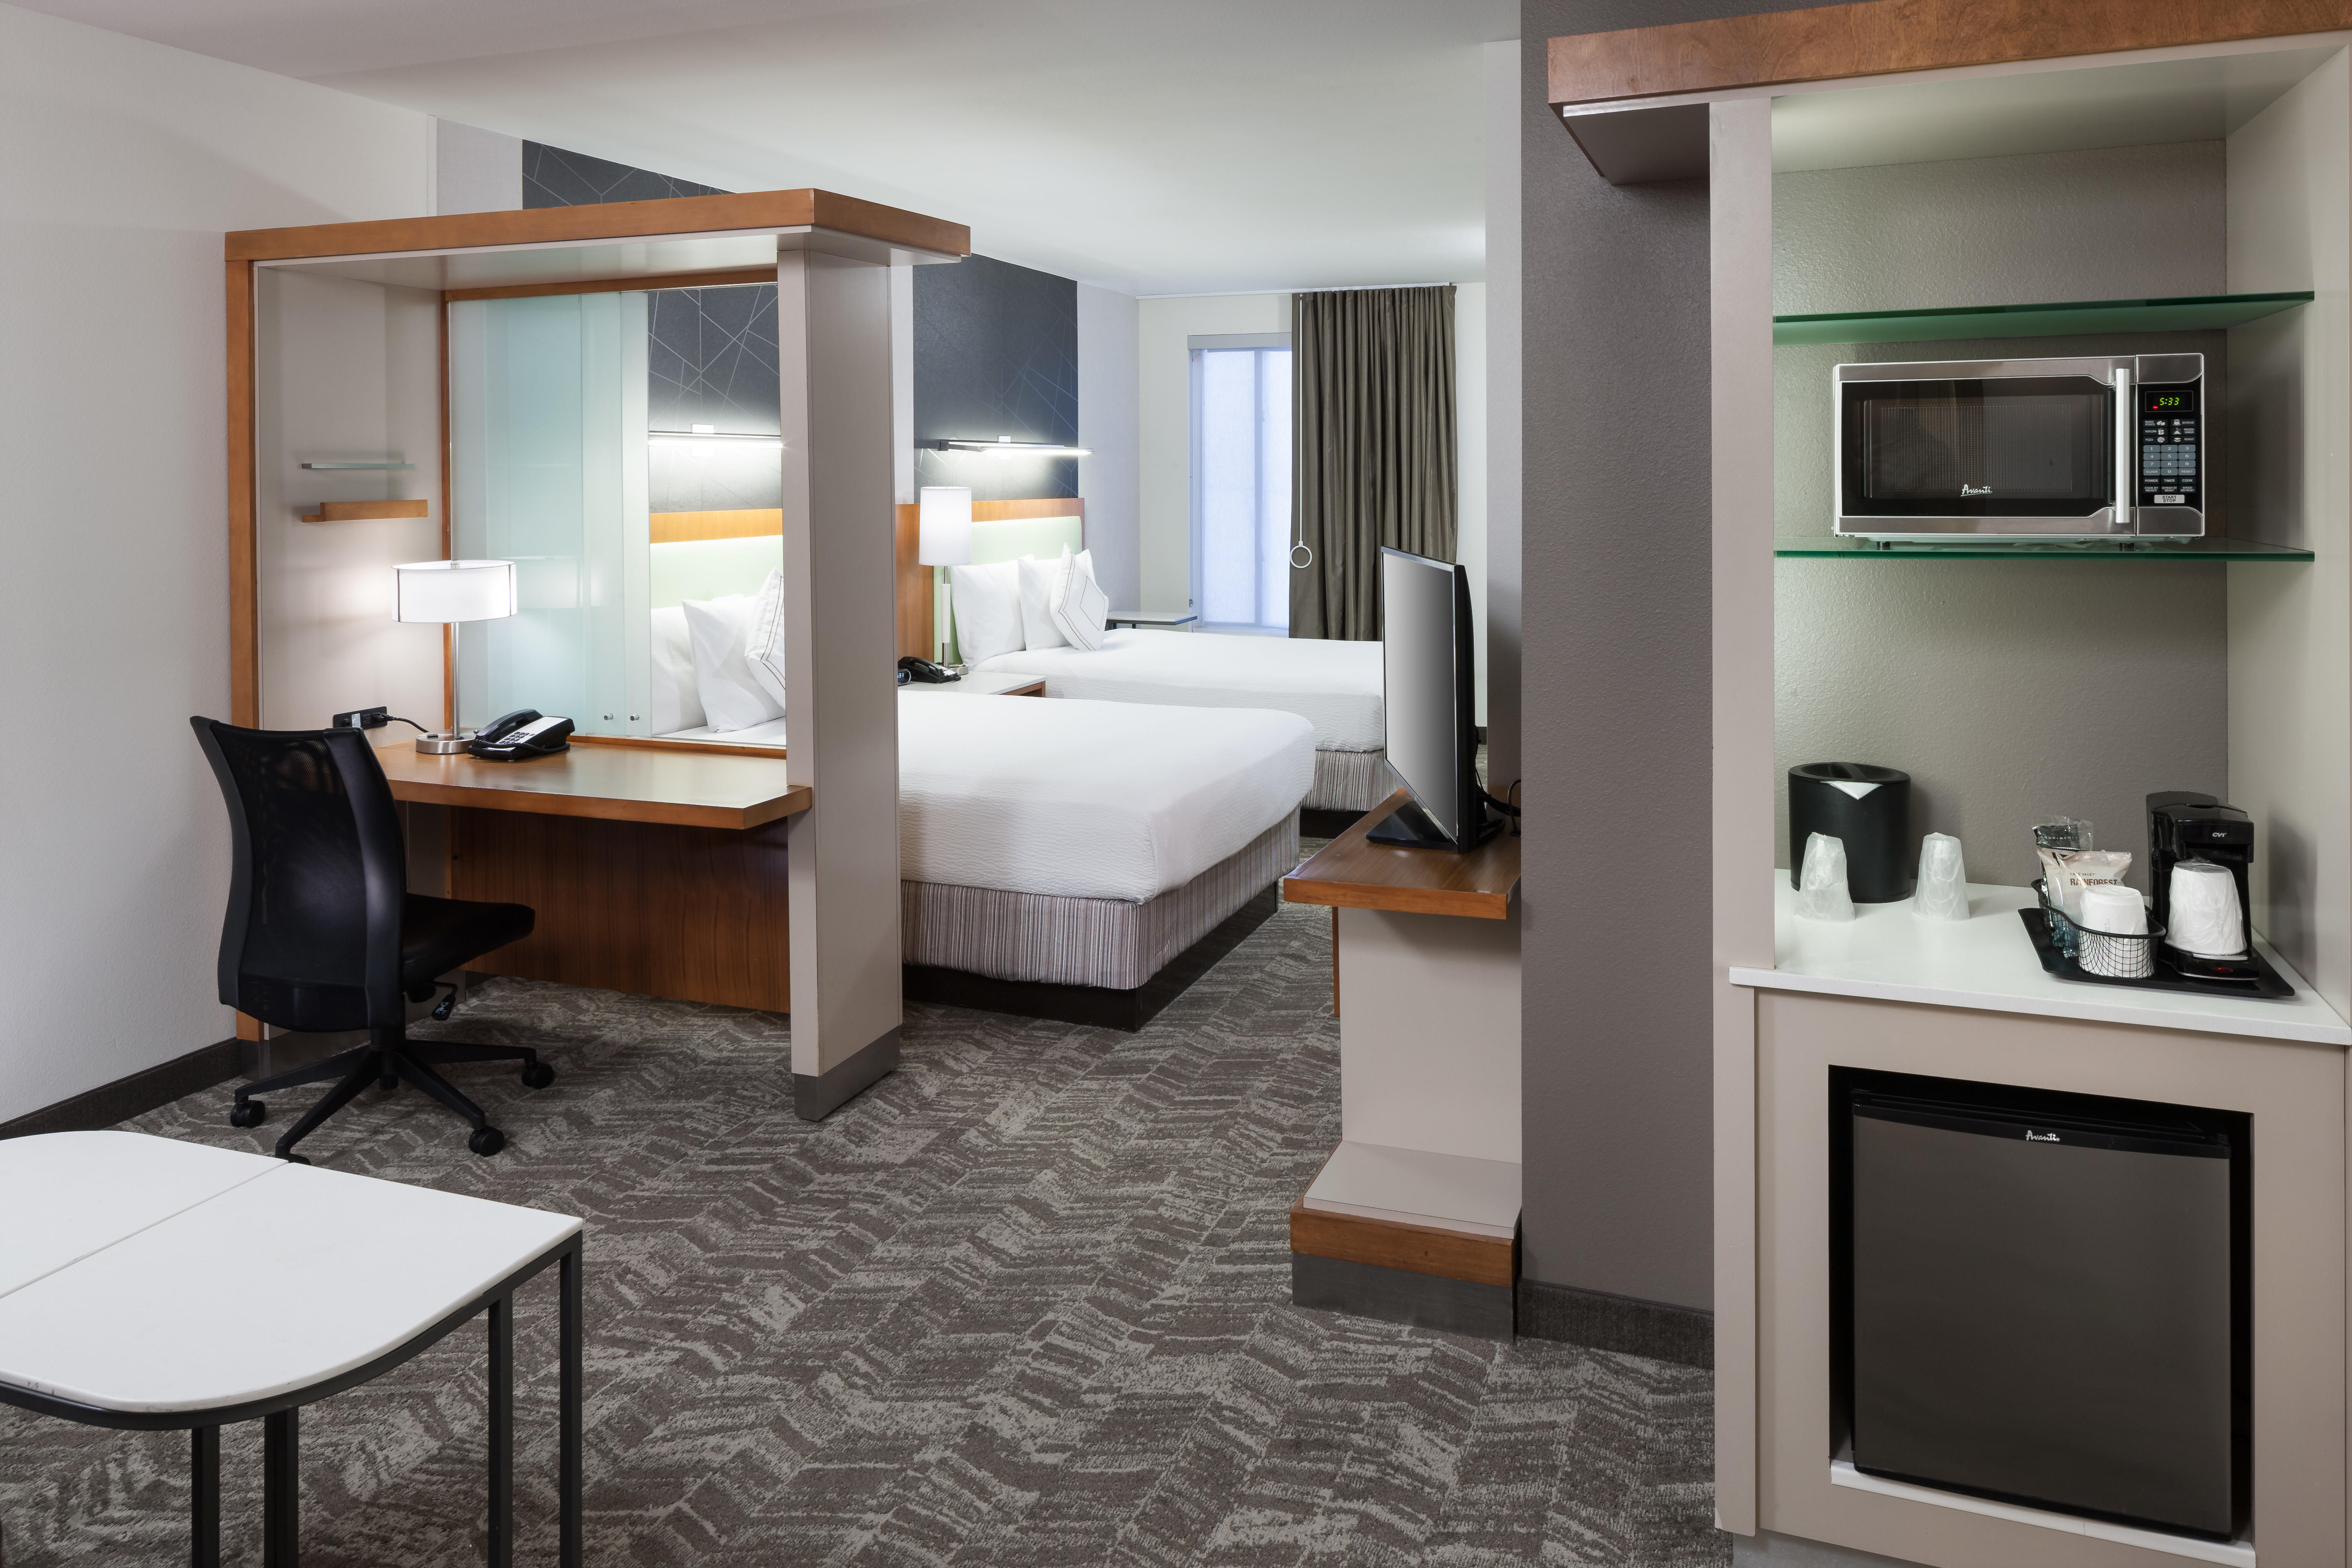 SpringHill Suites by Marriott Salt Lake City Airport image 2